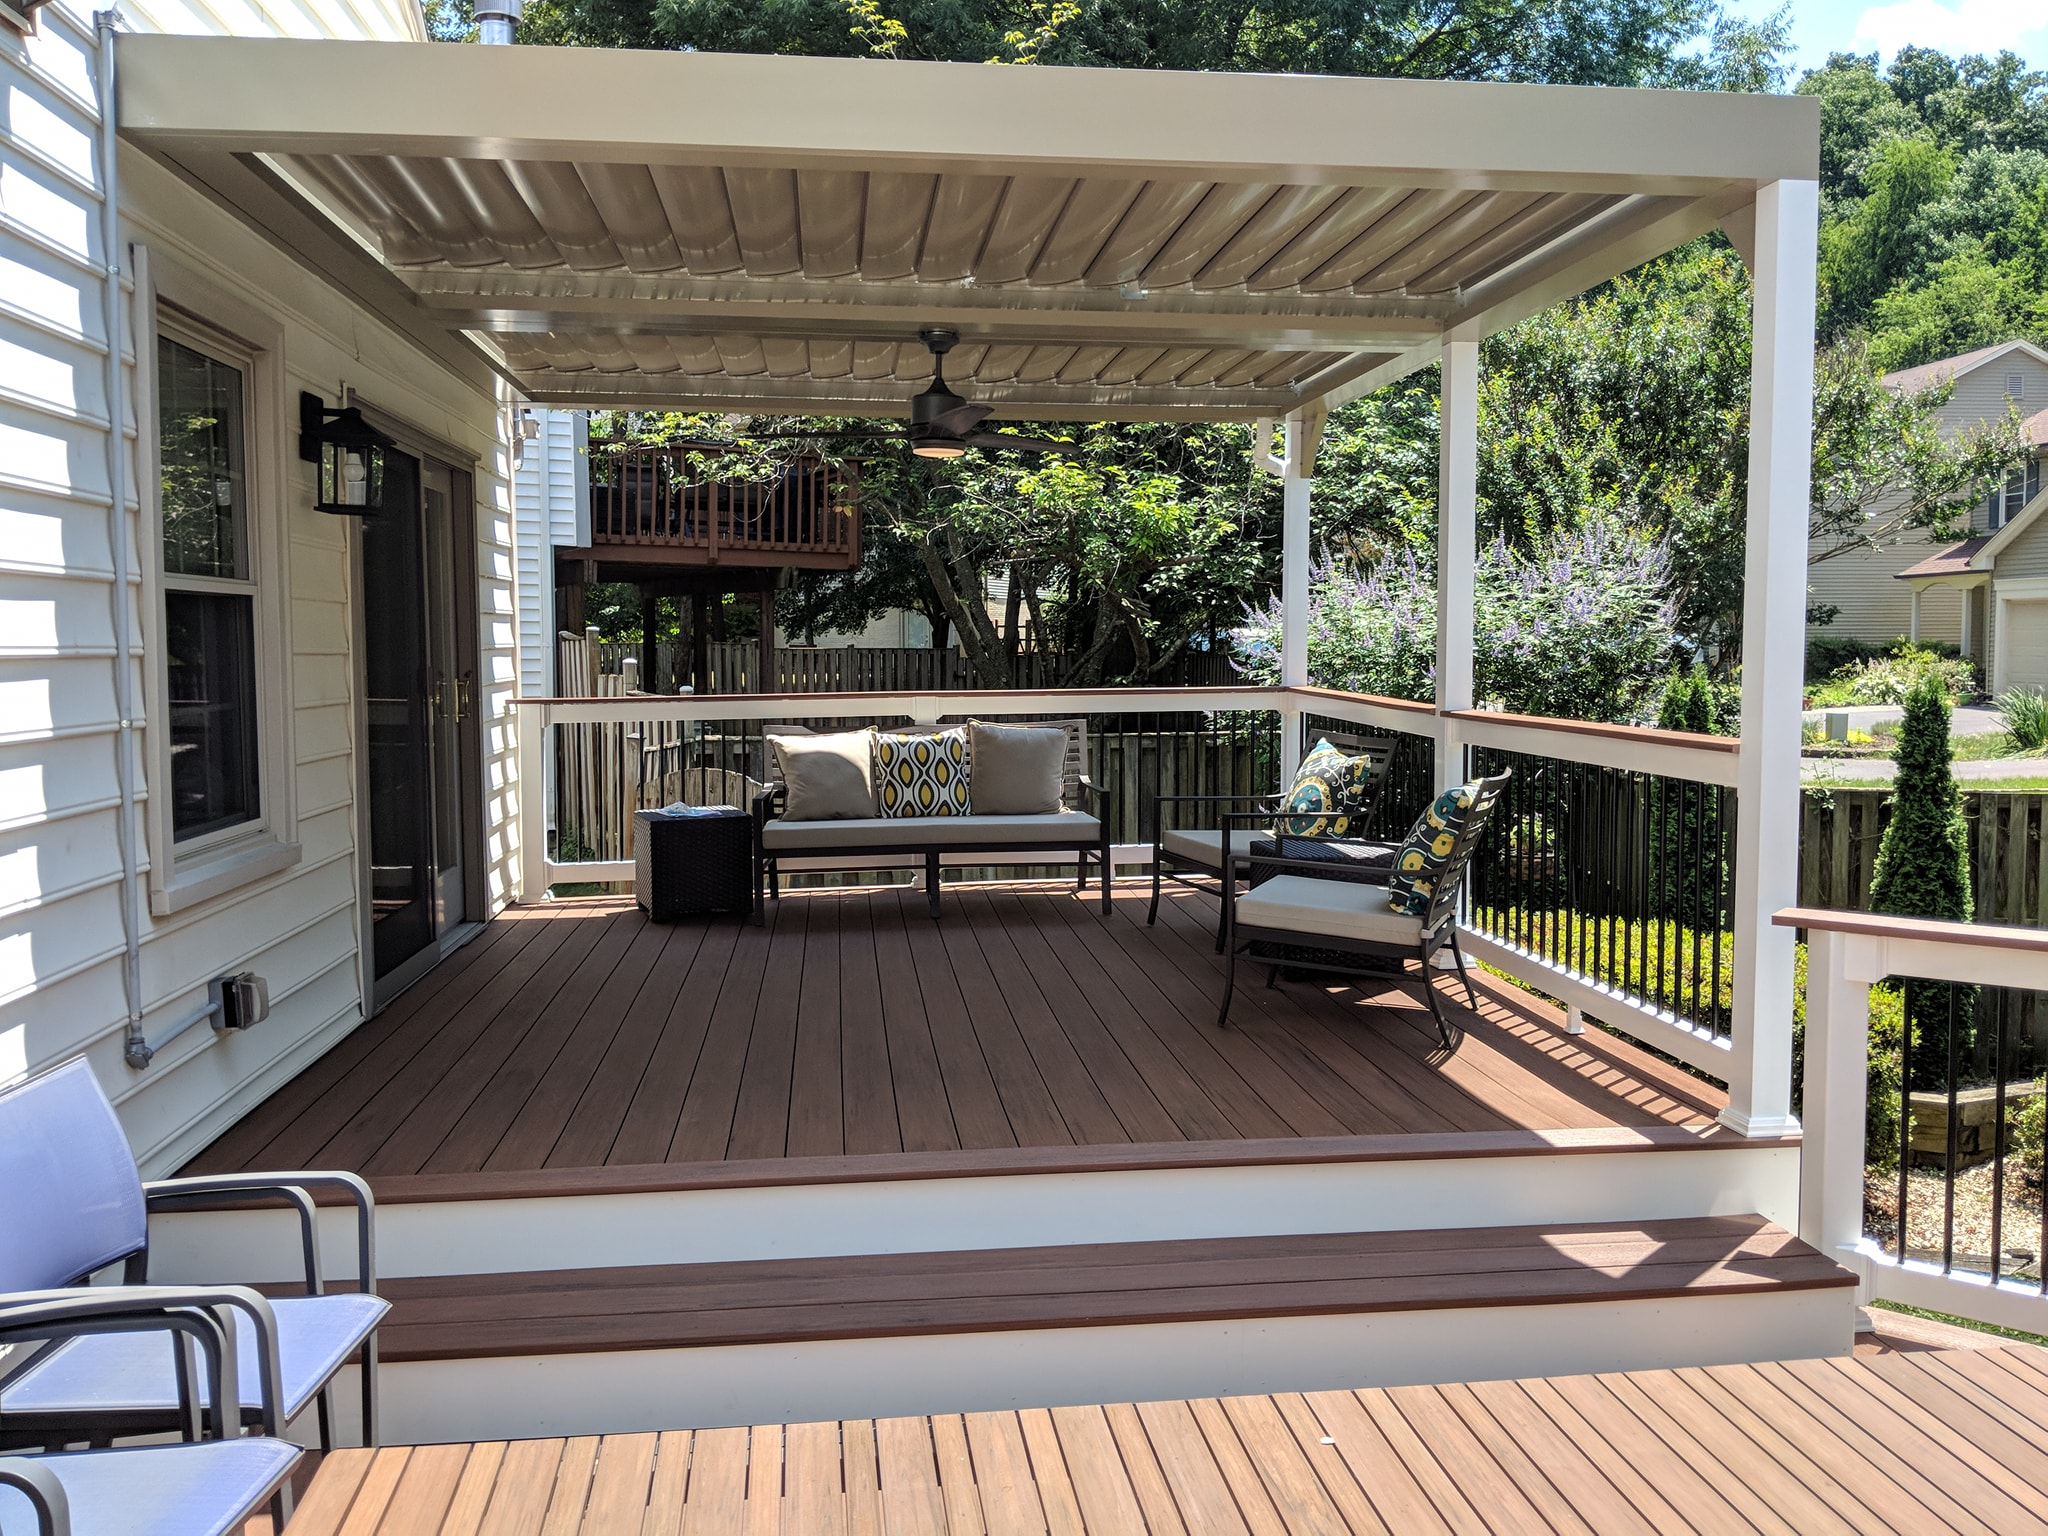 Deck Builder in Bowie, MD - Diamond Decks